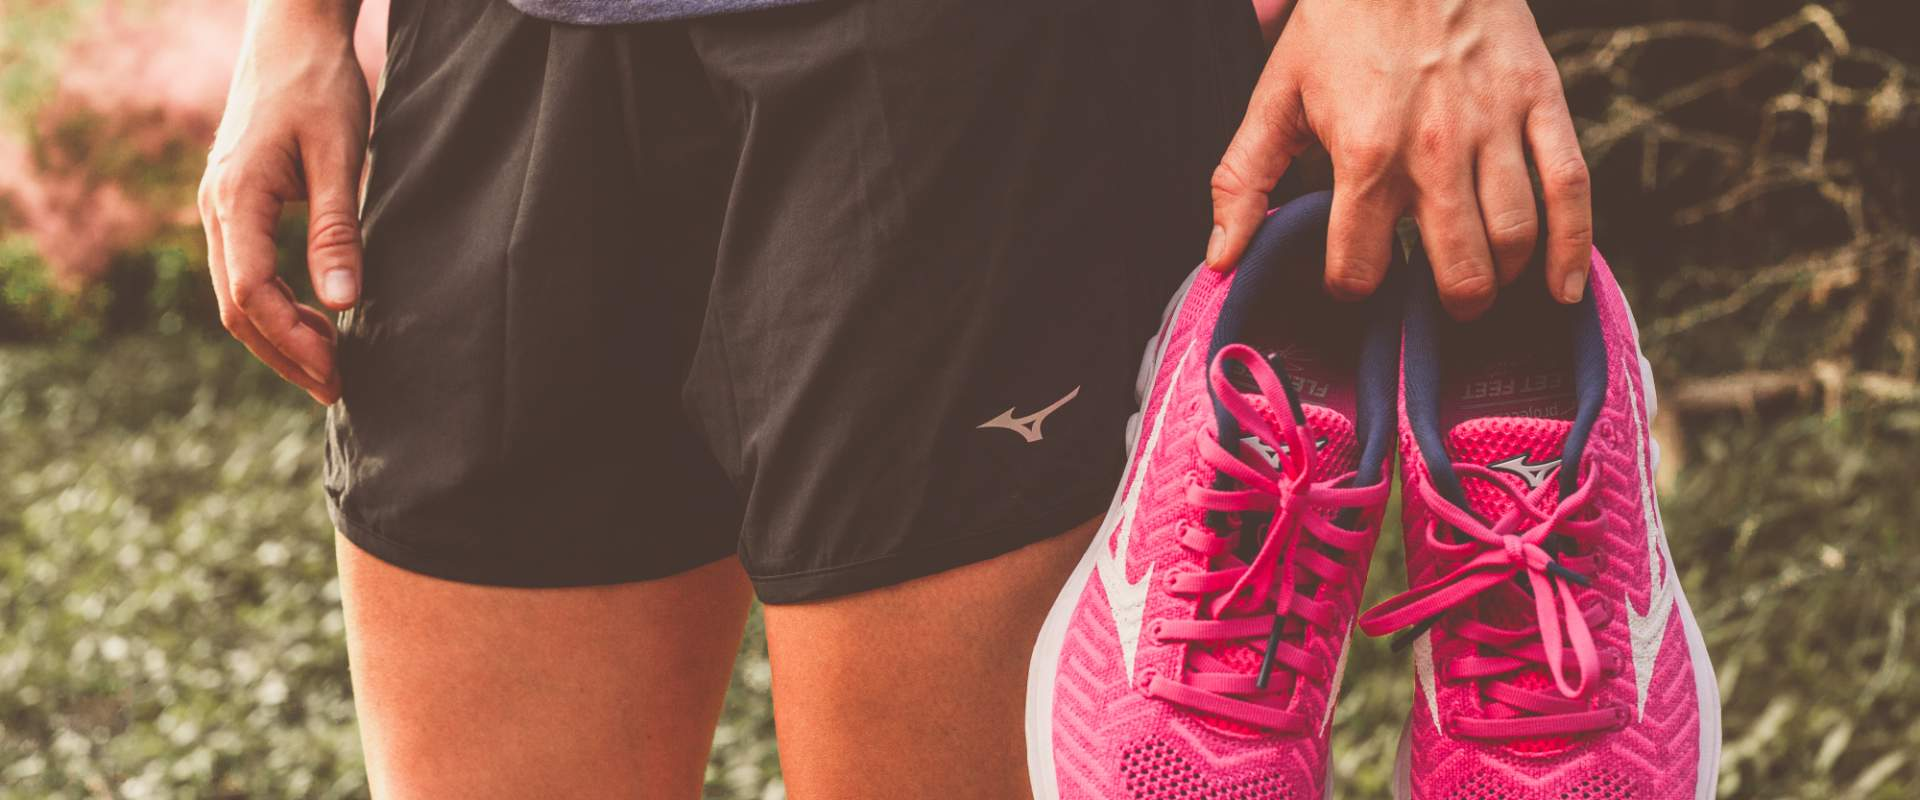 The Art of Finding the Perfect Shoe for Running or Walking in Murfreesboro and Beyond